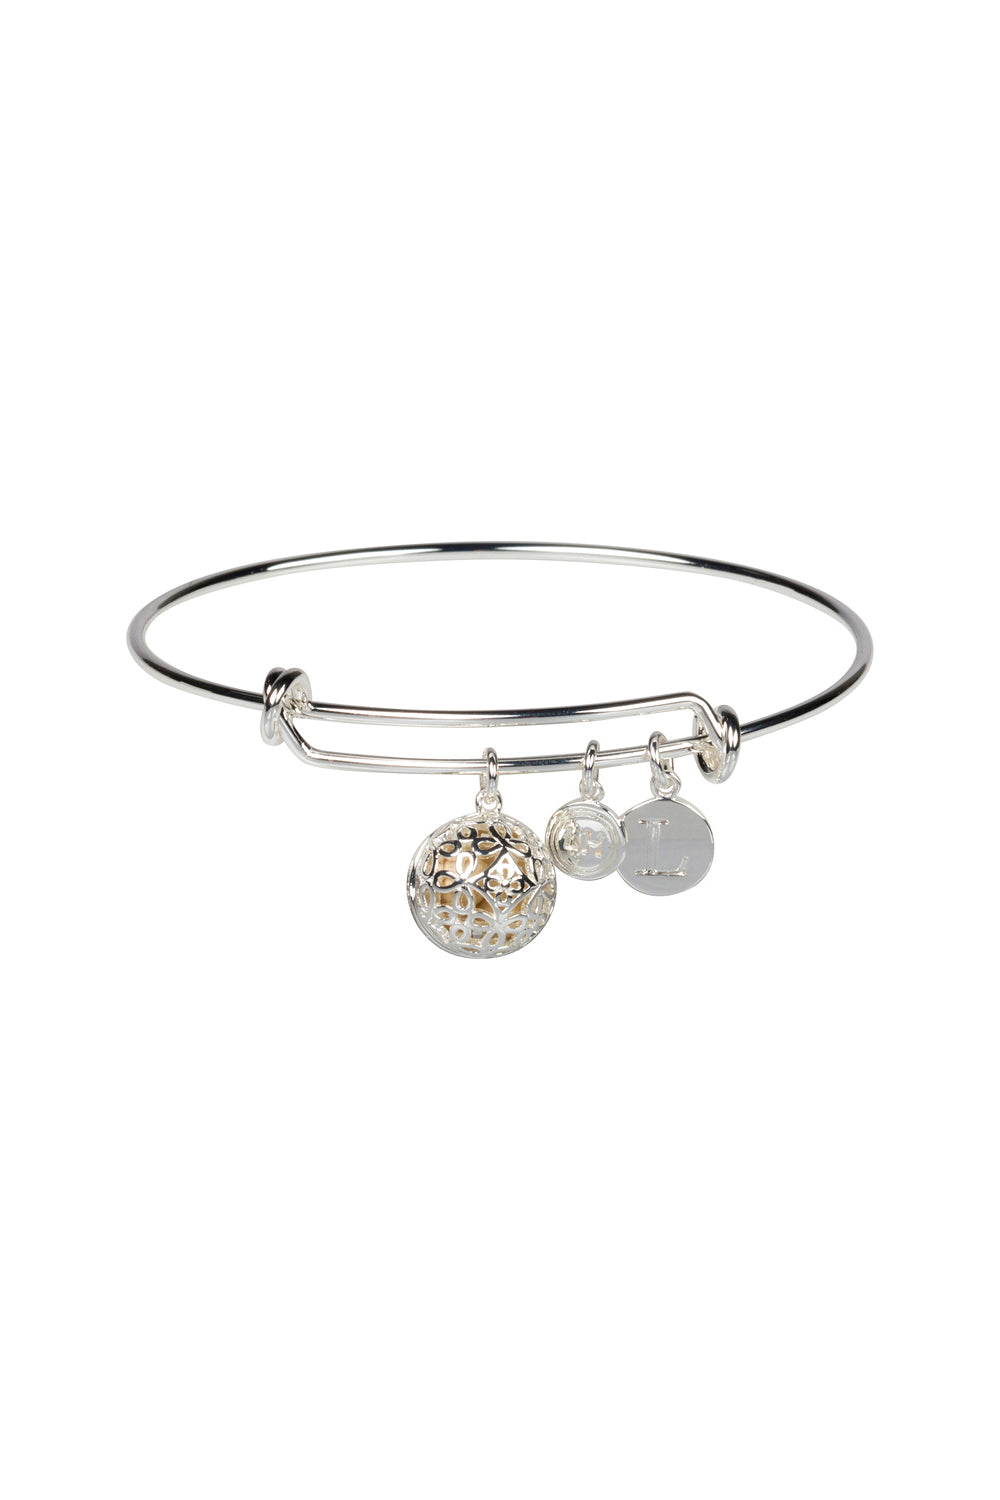 """L"" Initial Fragrance Bangle with Silver Tone Charm"